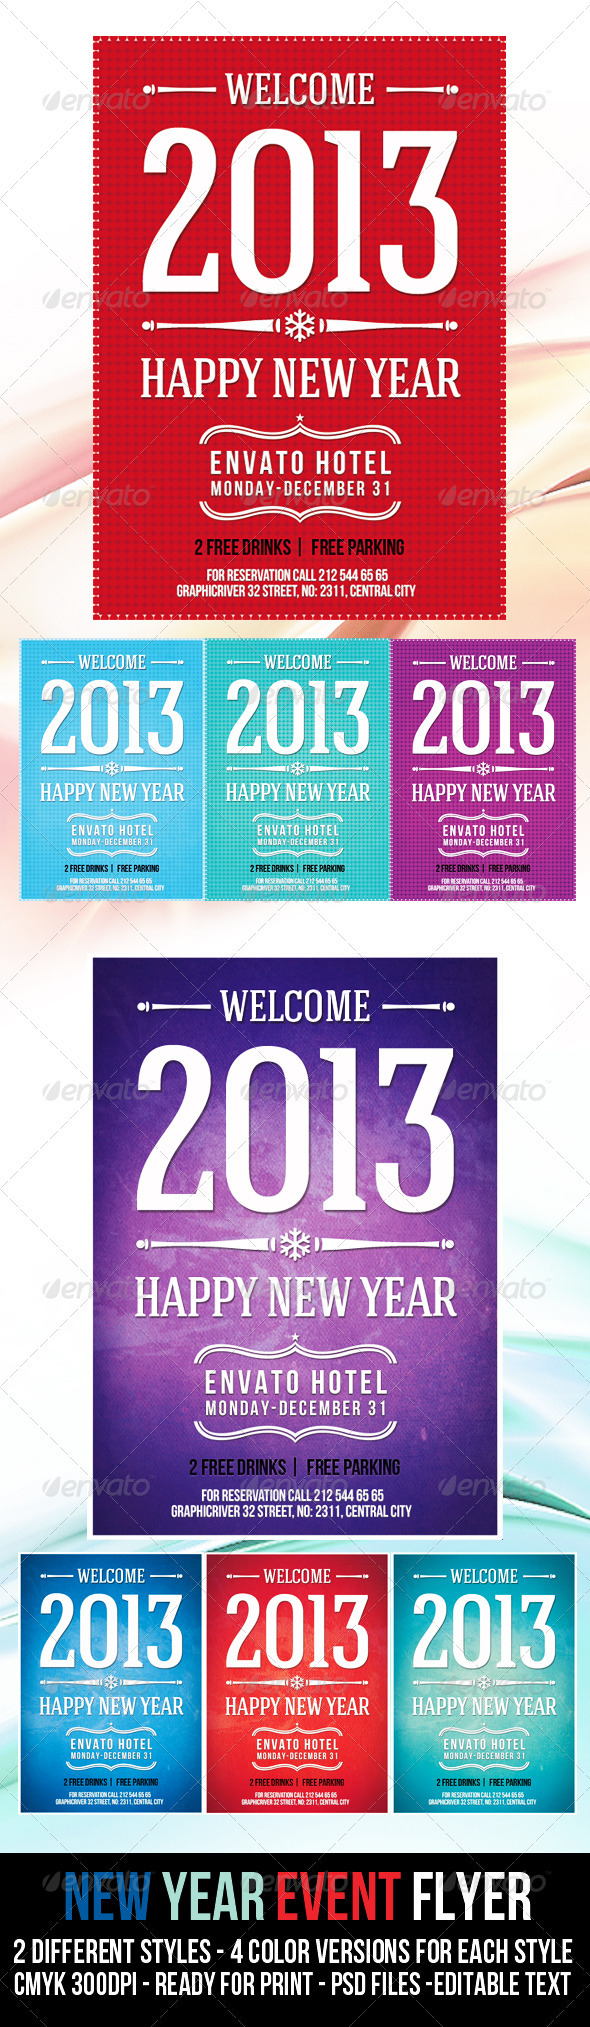 New Year Event Flyer  - Events Flyers